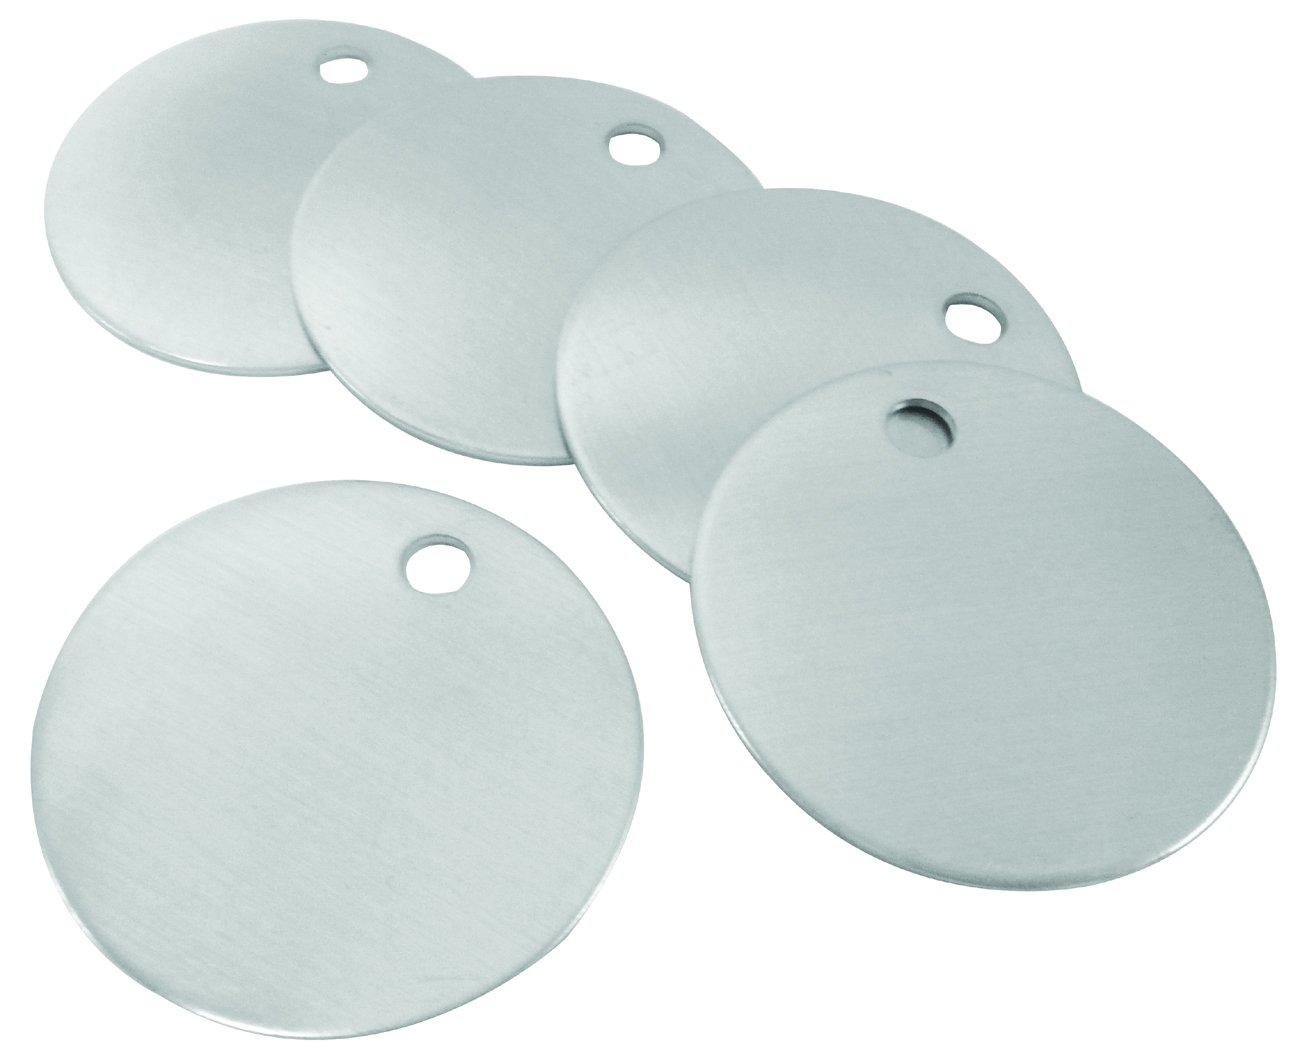 CH Hanson Blank Metal Tags - 1-1/2'' Round with Hole, Aluminum 18 Gauge, Model 1098A - Pack of 100 by CH Hanson